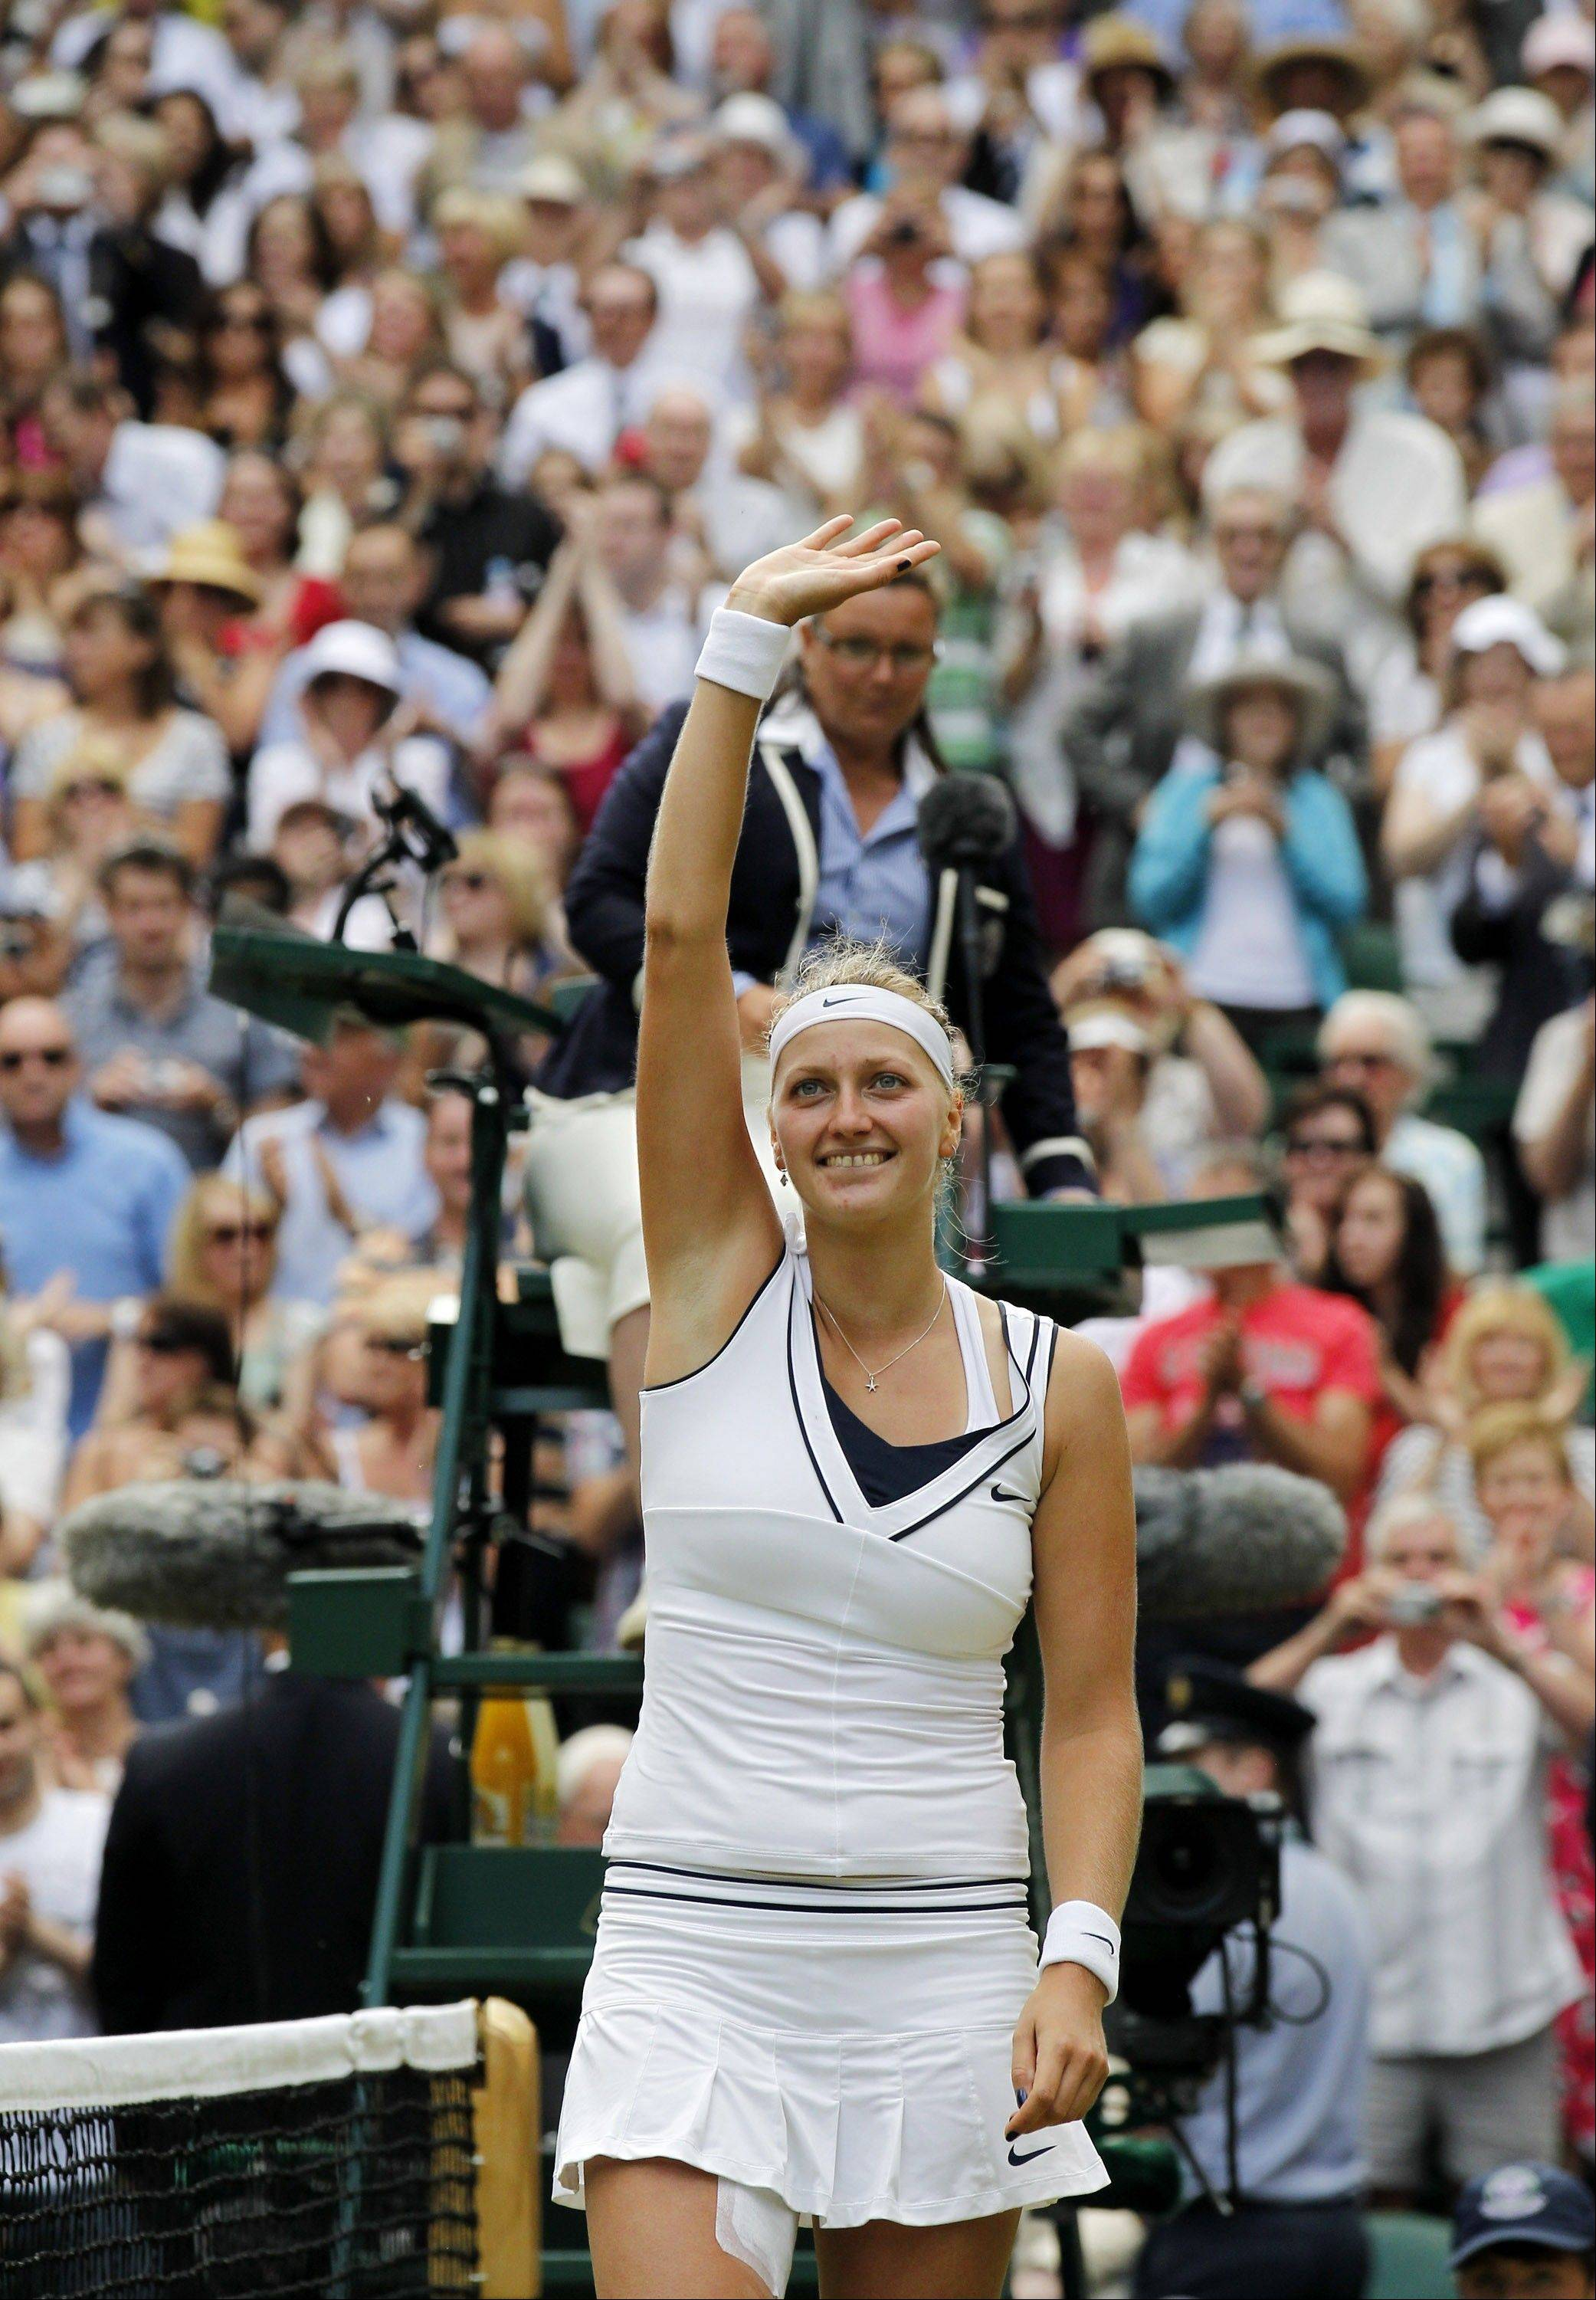 Petra Kvitova of the Czech Republic celebrates defeating Russia's Maria Sharapova in the ladies' singles final at the All England Lawn Tennis Championships at Wimbledon, Saturday, July 2, 2011.